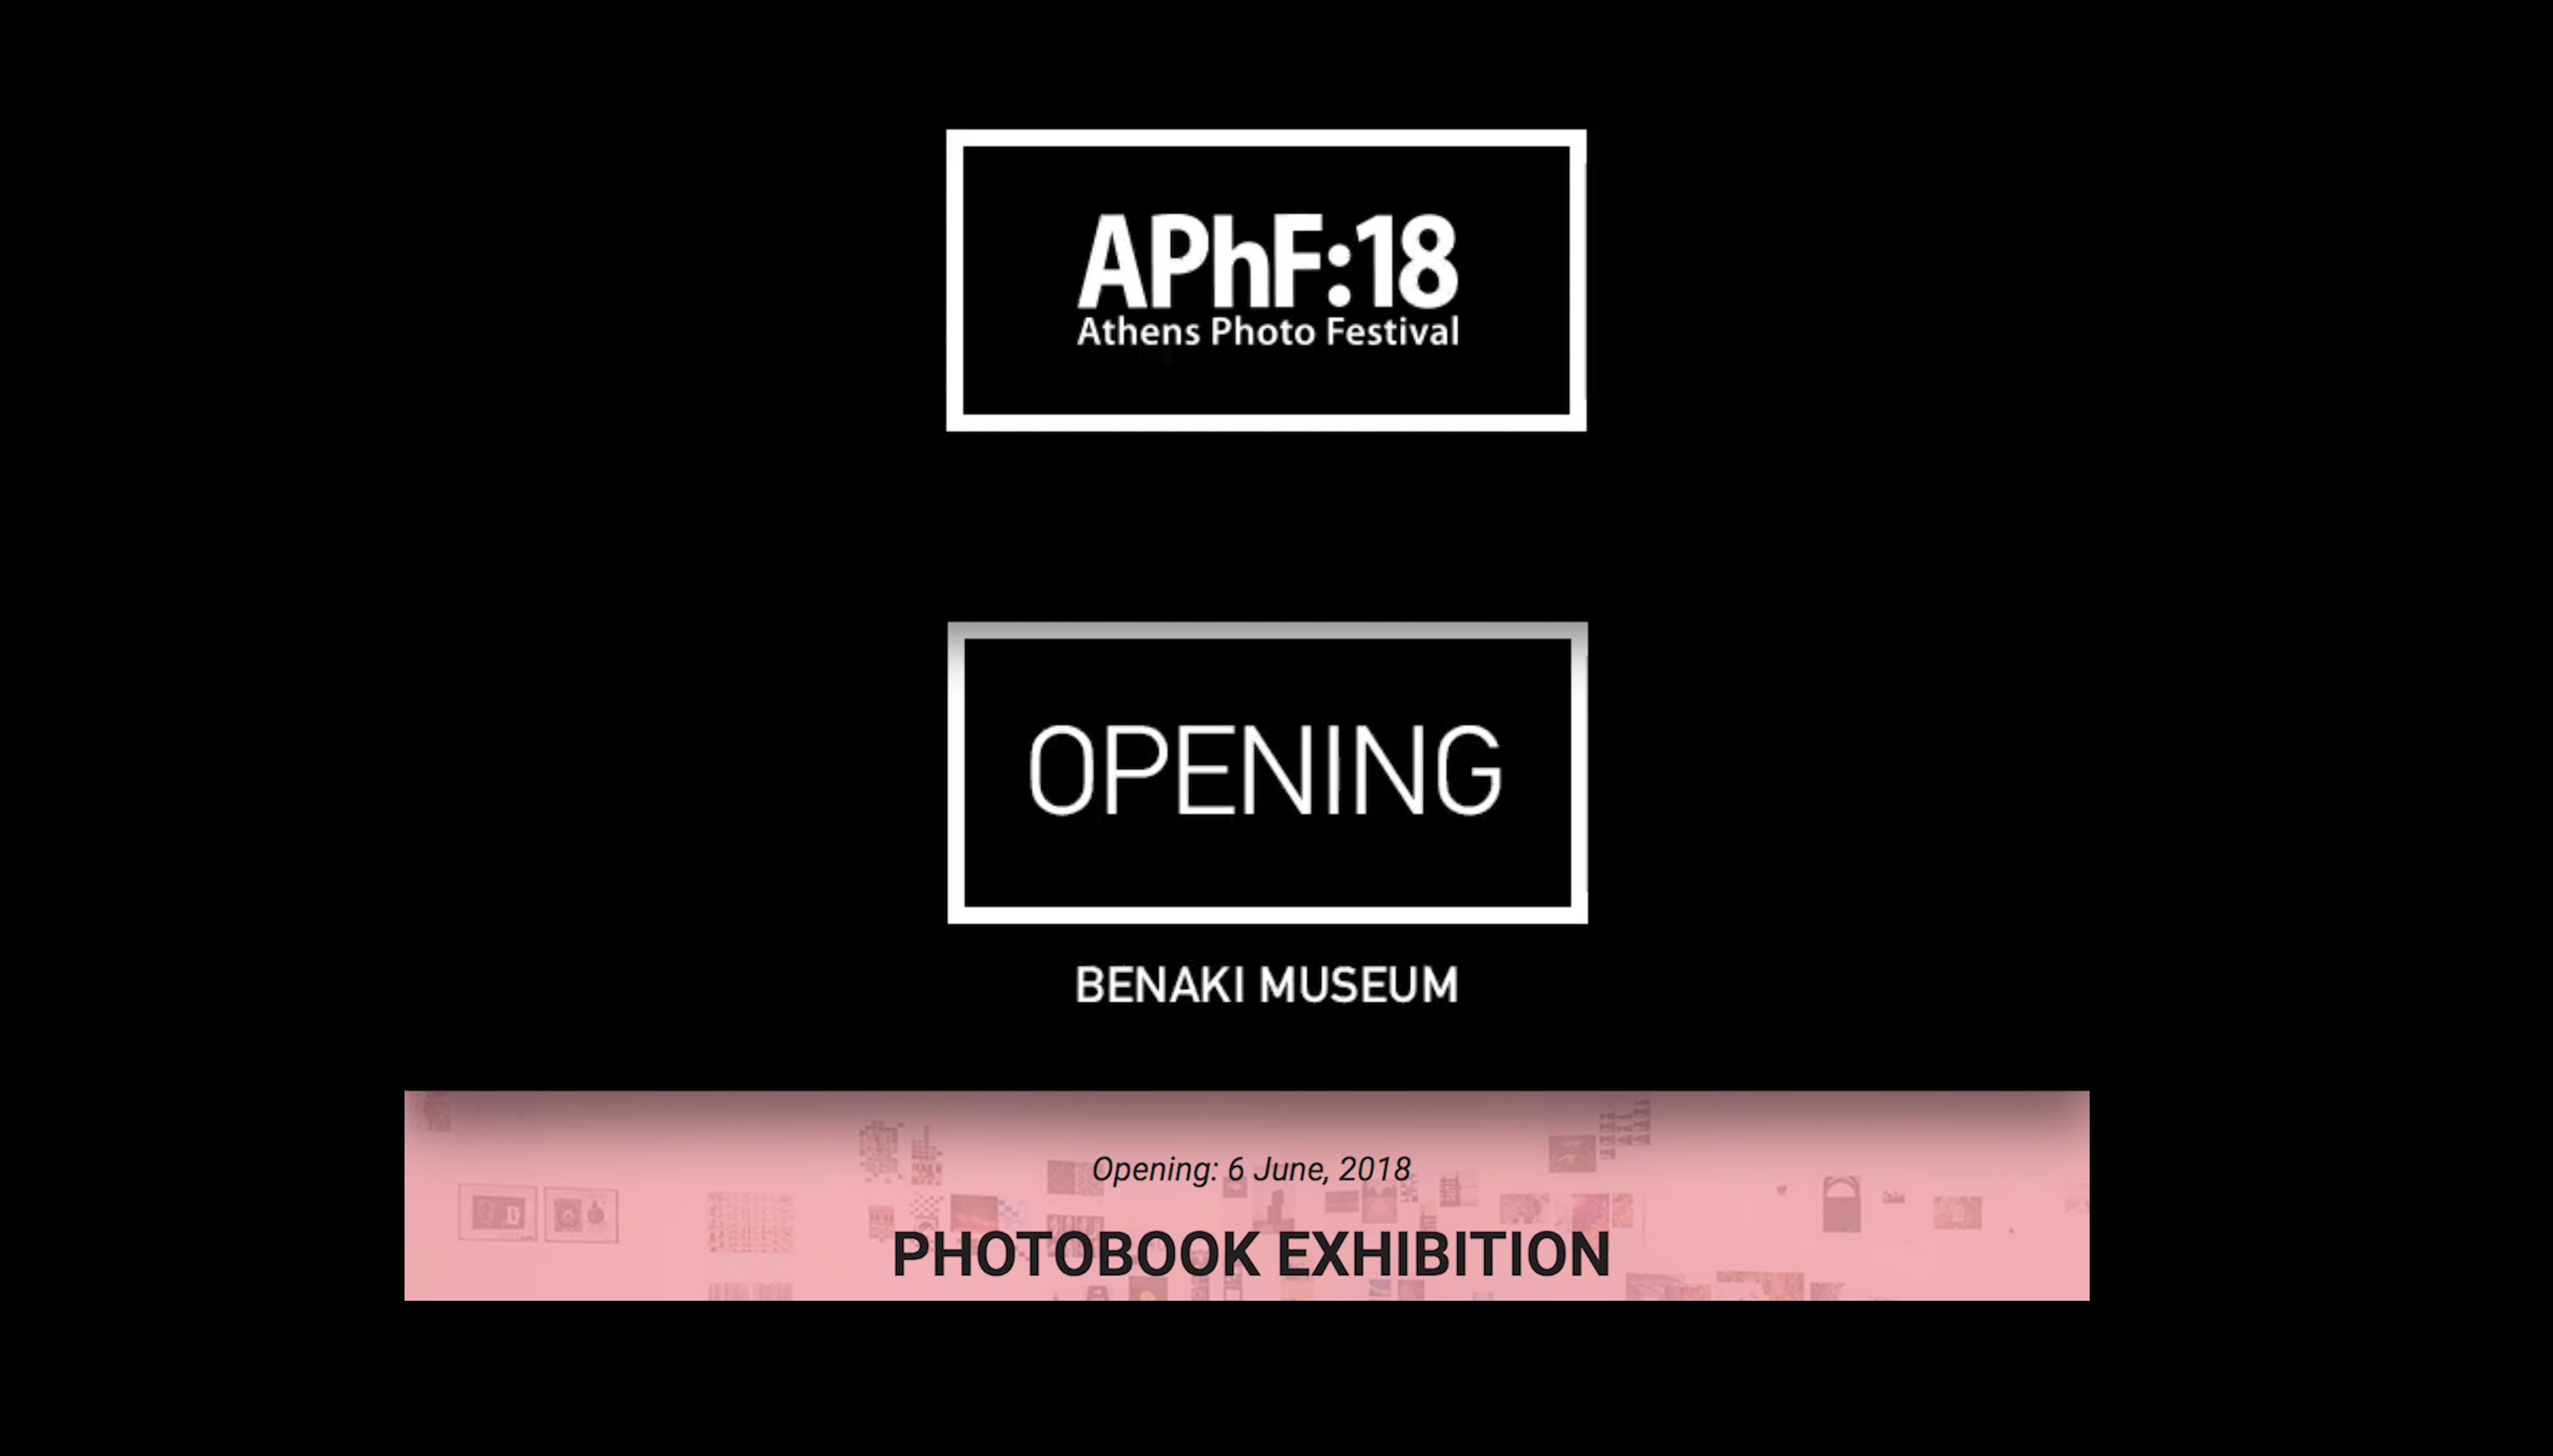 Athens Photo Festival 2018 Photobook Exhibition.